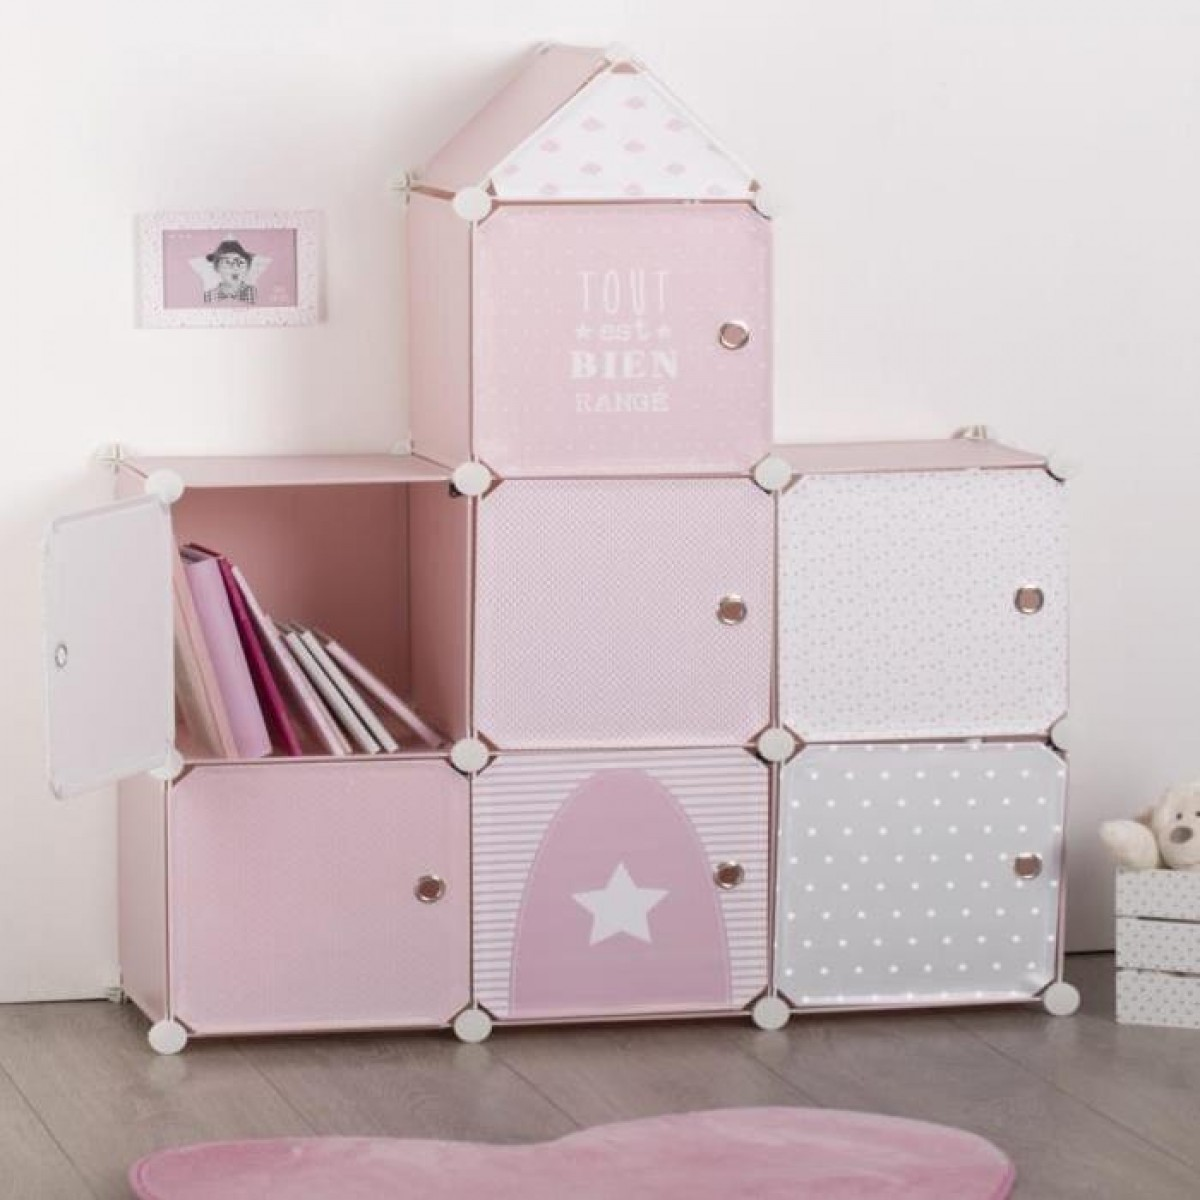 meuble de rangement rose en forme de ch teau les douces nuits de ma linge de maison. Black Bedroom Furniture Sets. Home Design Ideas